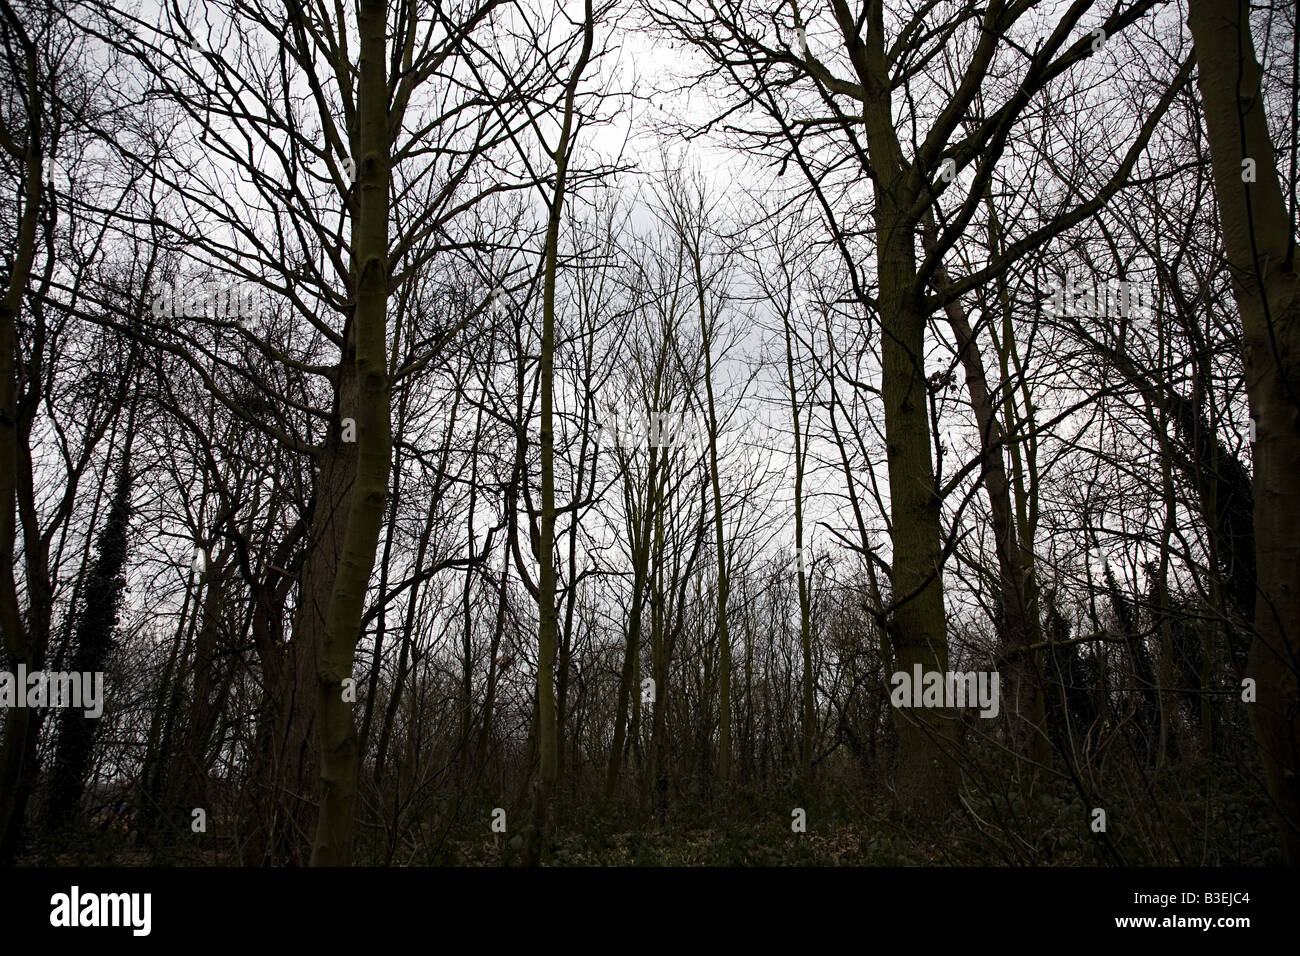 Forest of bare trees - Stock Image